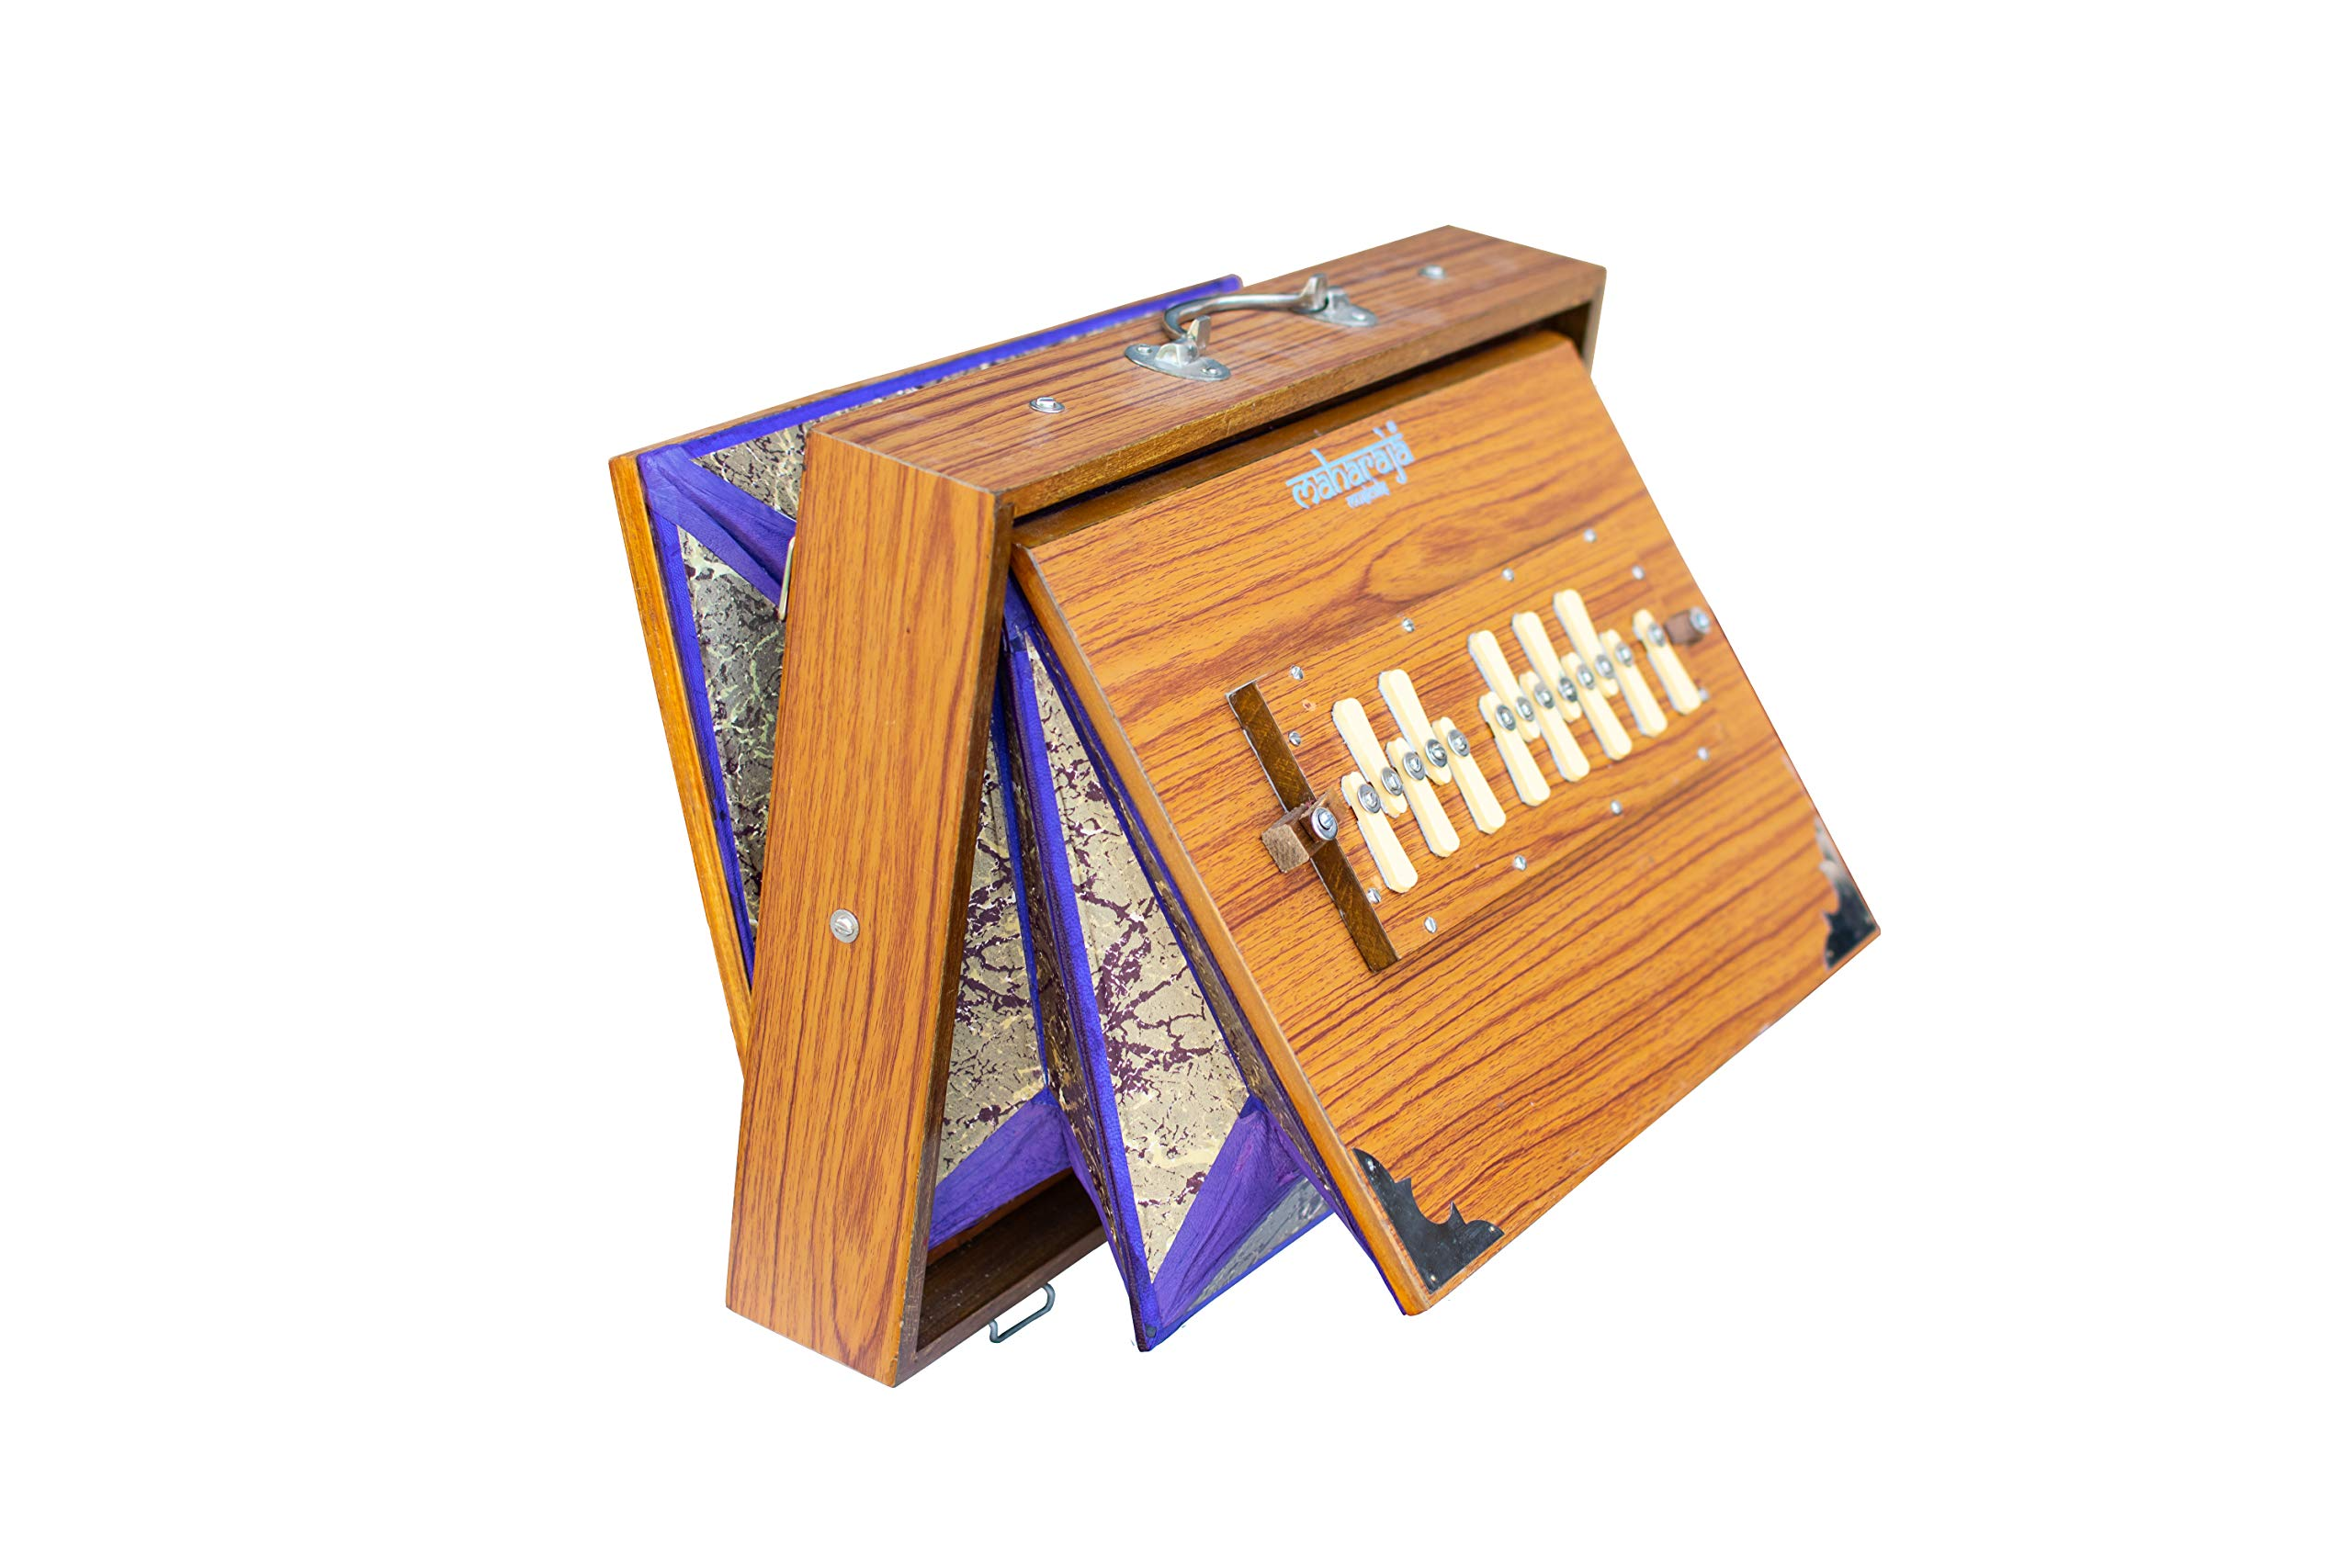 Shruti Box, Maharaja Musicals, Large, Natural Color, 16x12x3 Inches, 13 Notes, Surpeti, Sur Peti, Long Sustain, Professional Quality Shruthi Box, With Bag (PDI-FEG) by Maharaja Musicals